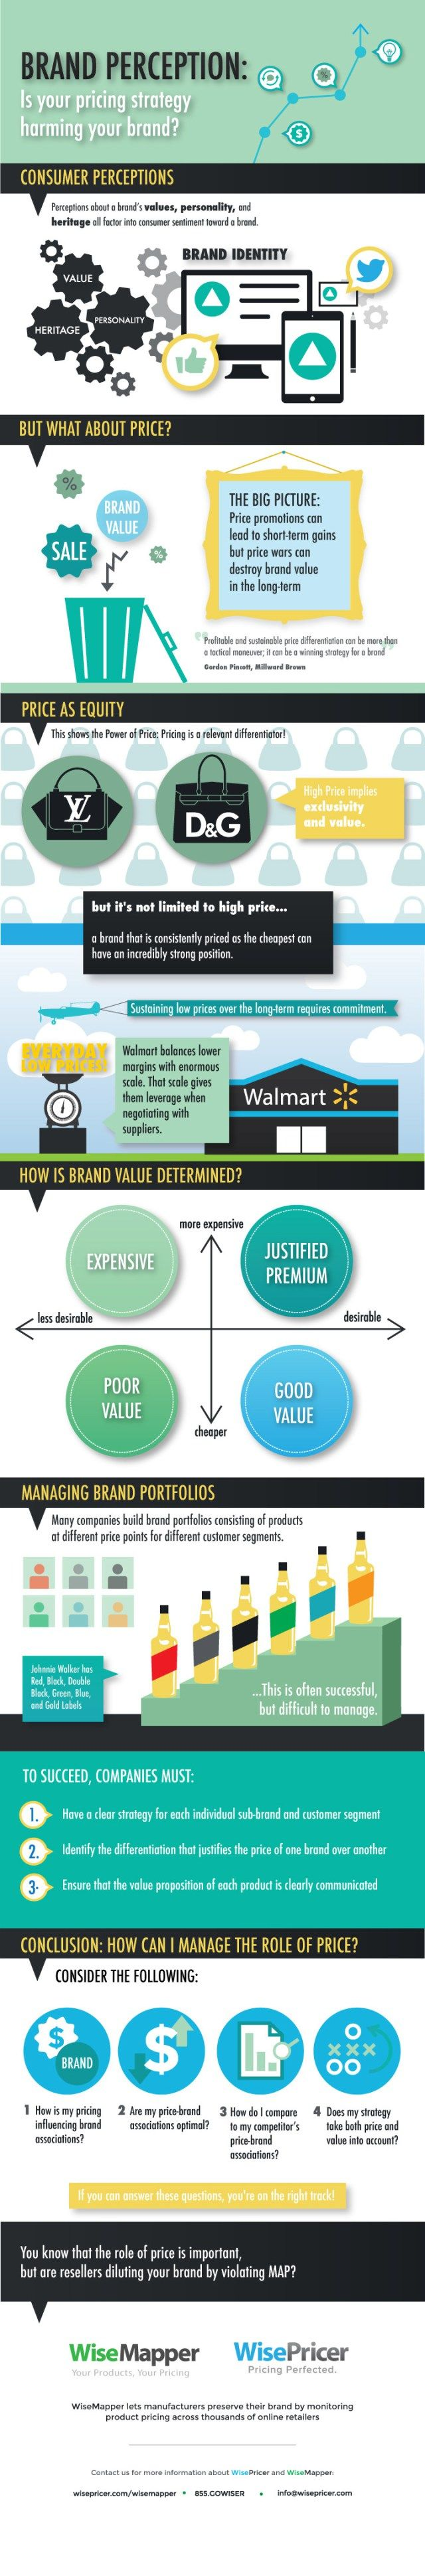 Brand perception #infografia #infographic #marketing